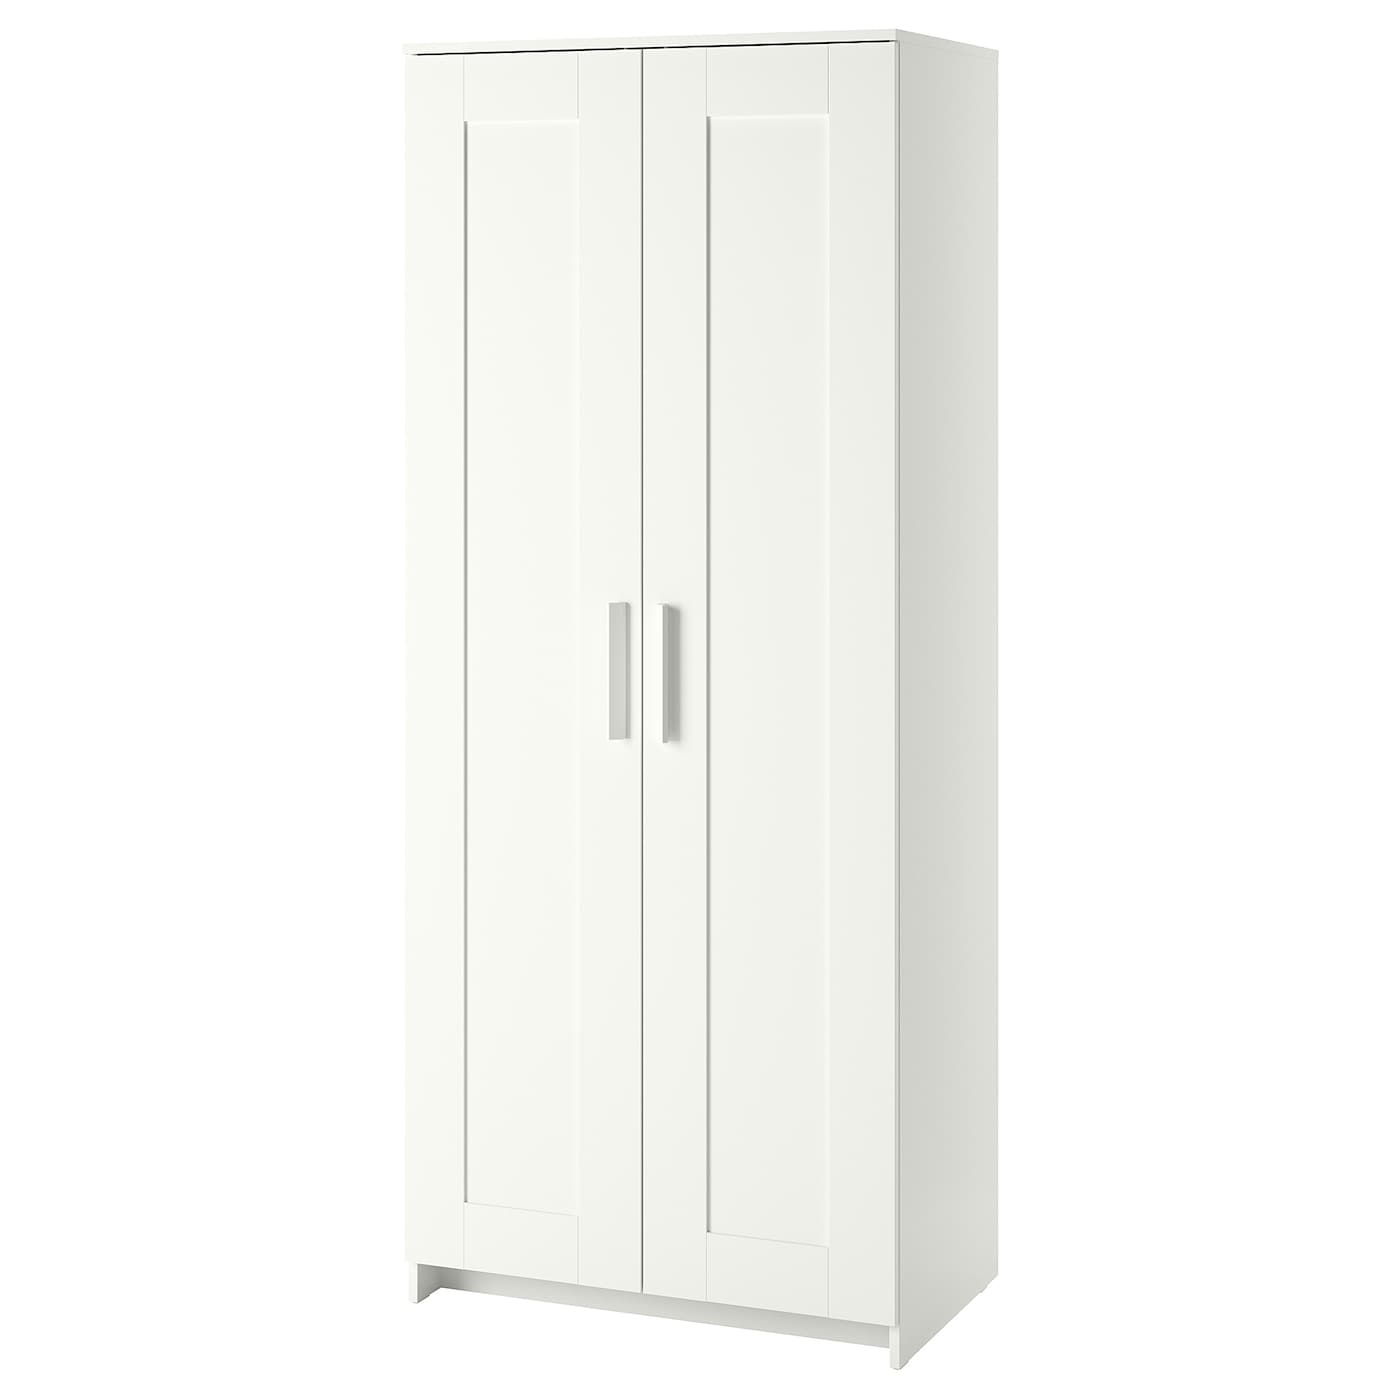 wardrobes wardrobe sale ikea. Black Bedroom Furniture Sets. Home Design Ideas